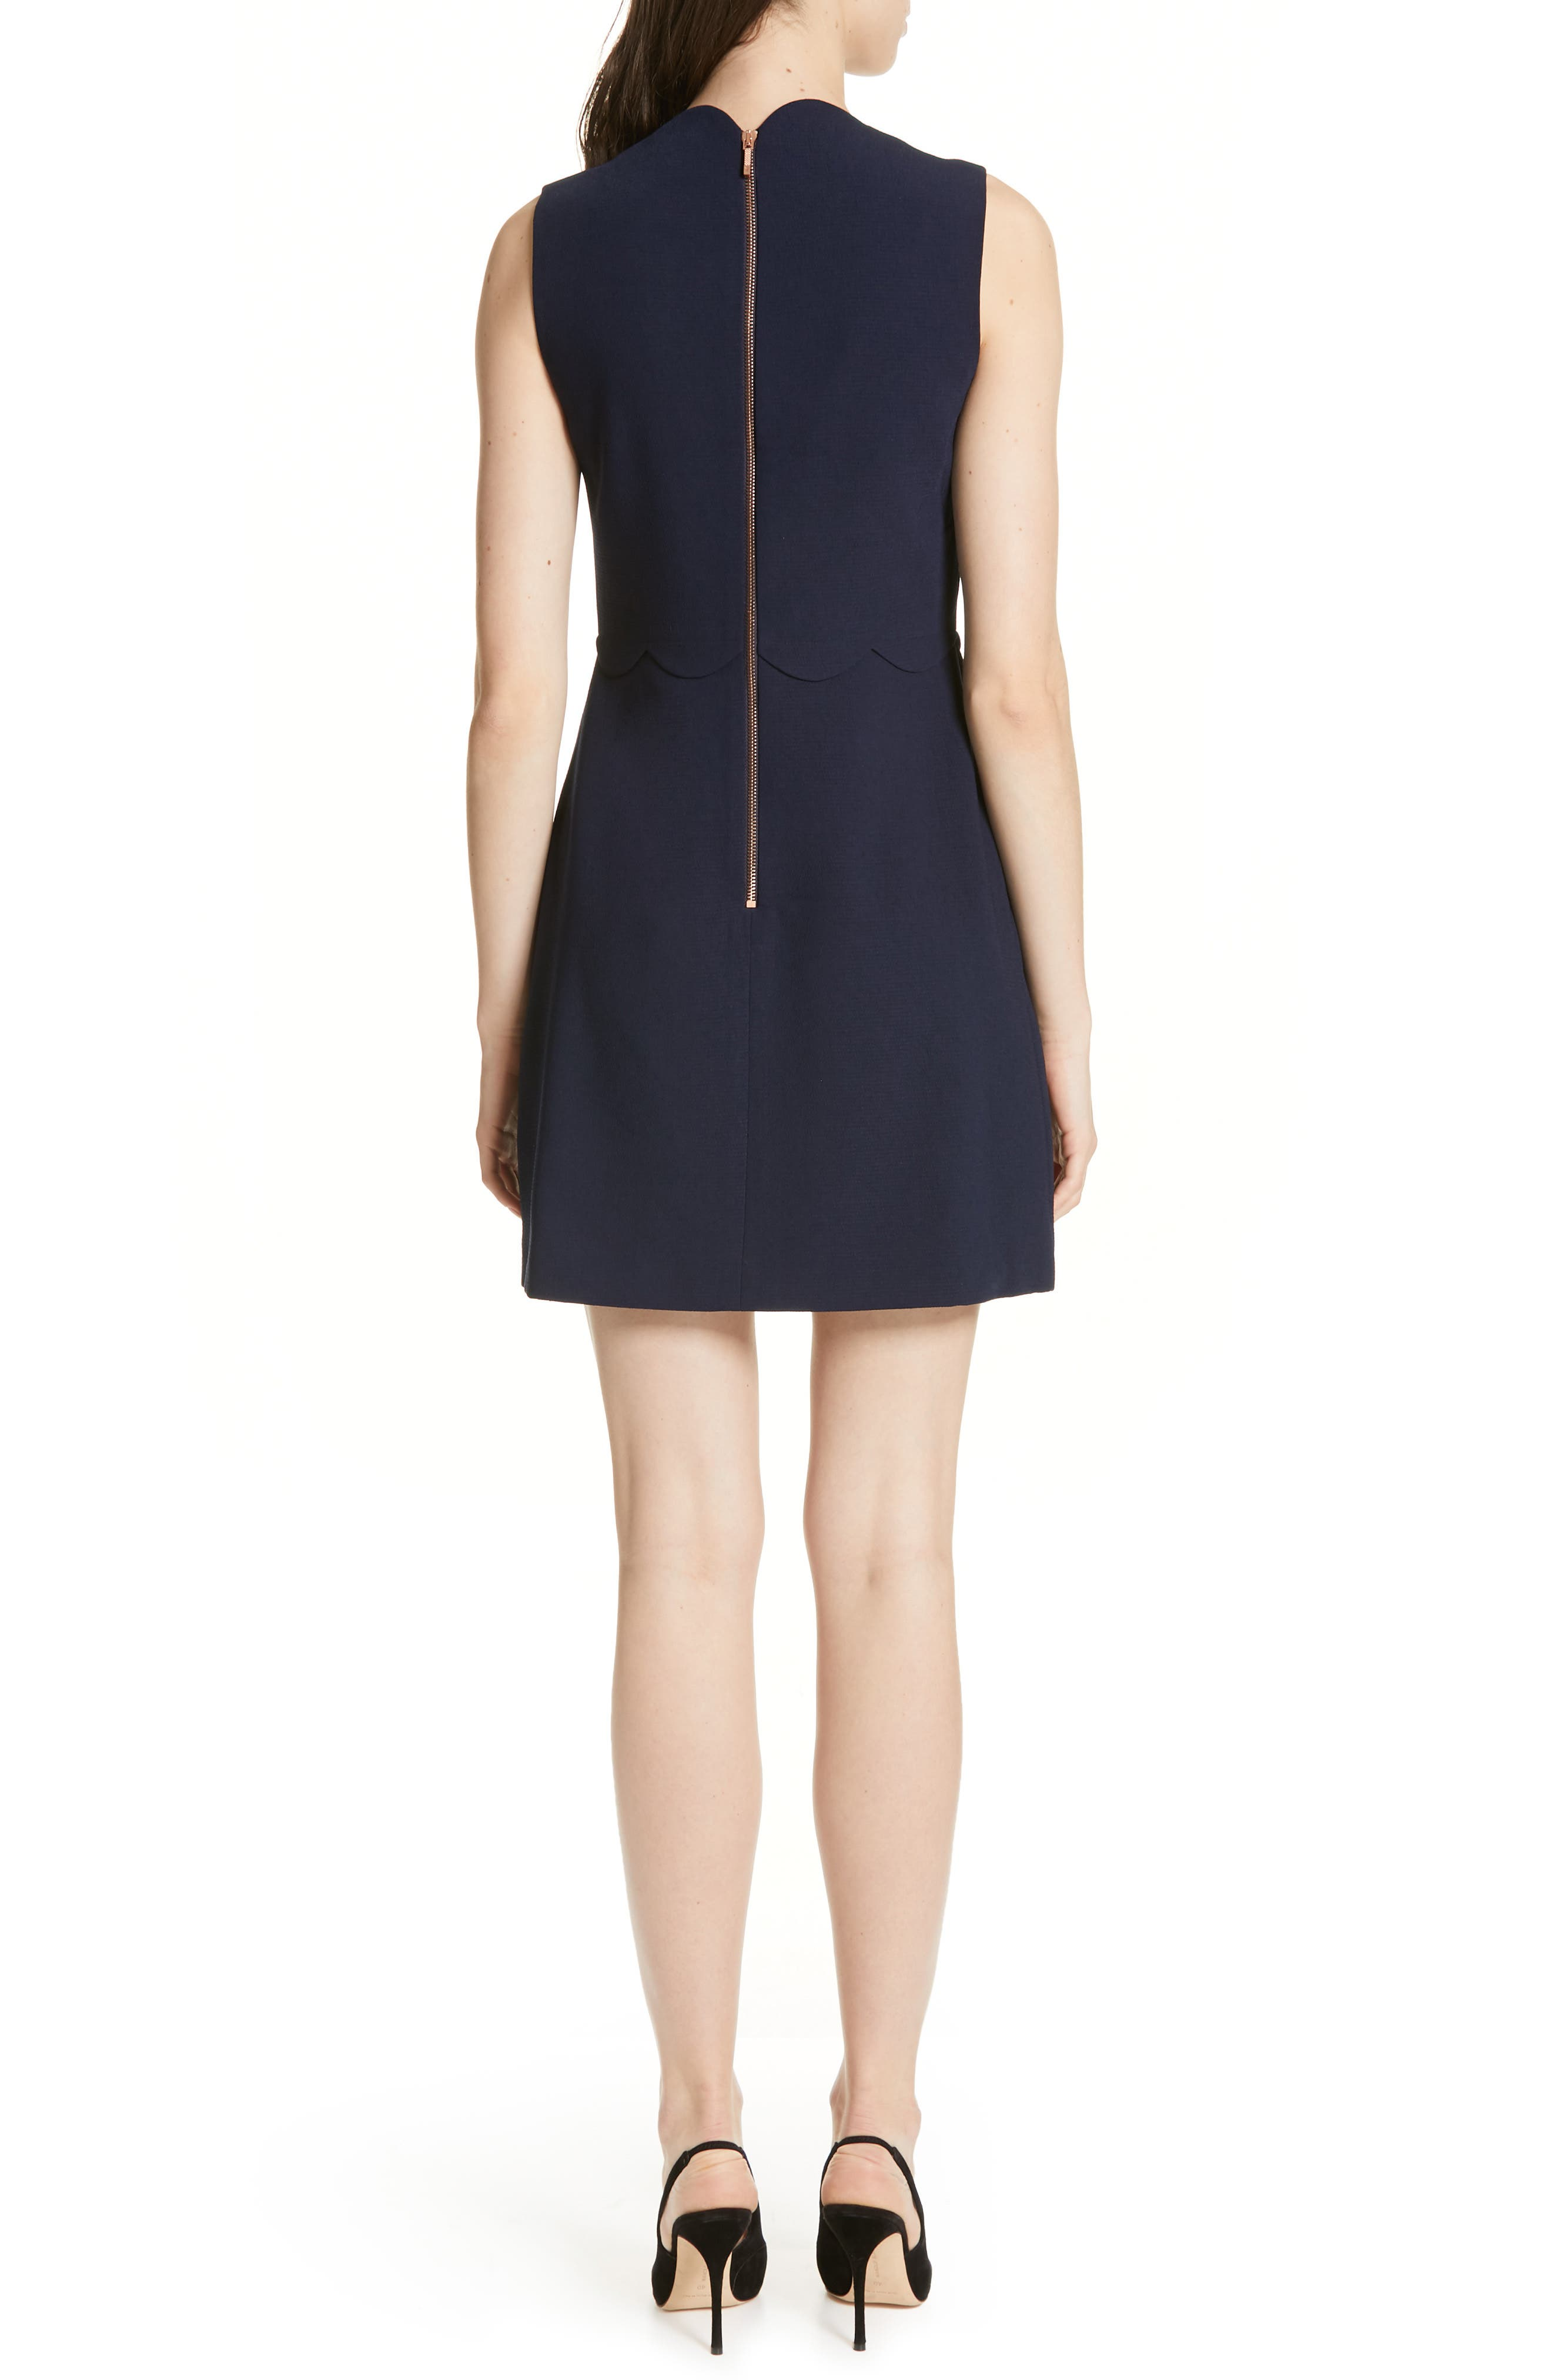 Rubeyed Scallop Edge A-Line Dress,                             Alternate thumbnail 2, color,                             DARK BLUE